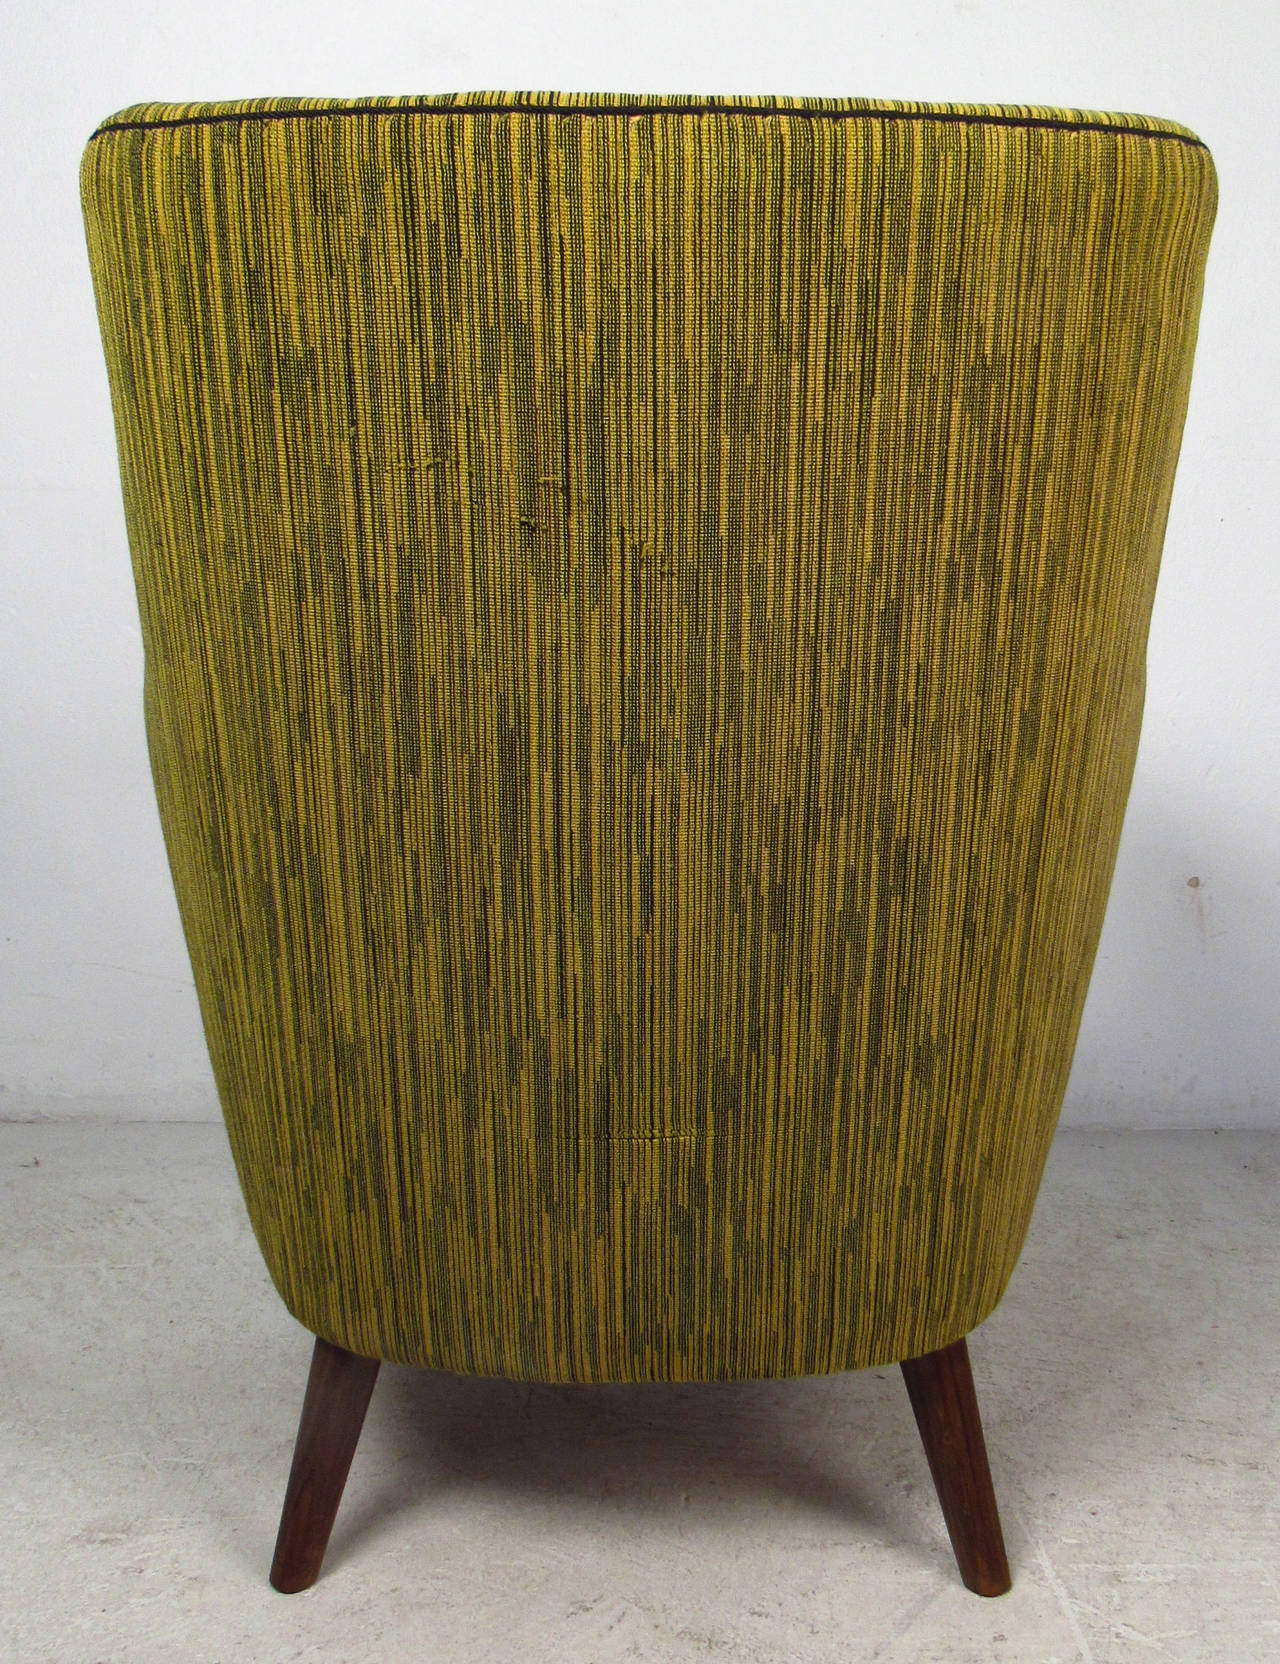 Midcentury Mogens Lassen Style Lounge Chair For Sale 2